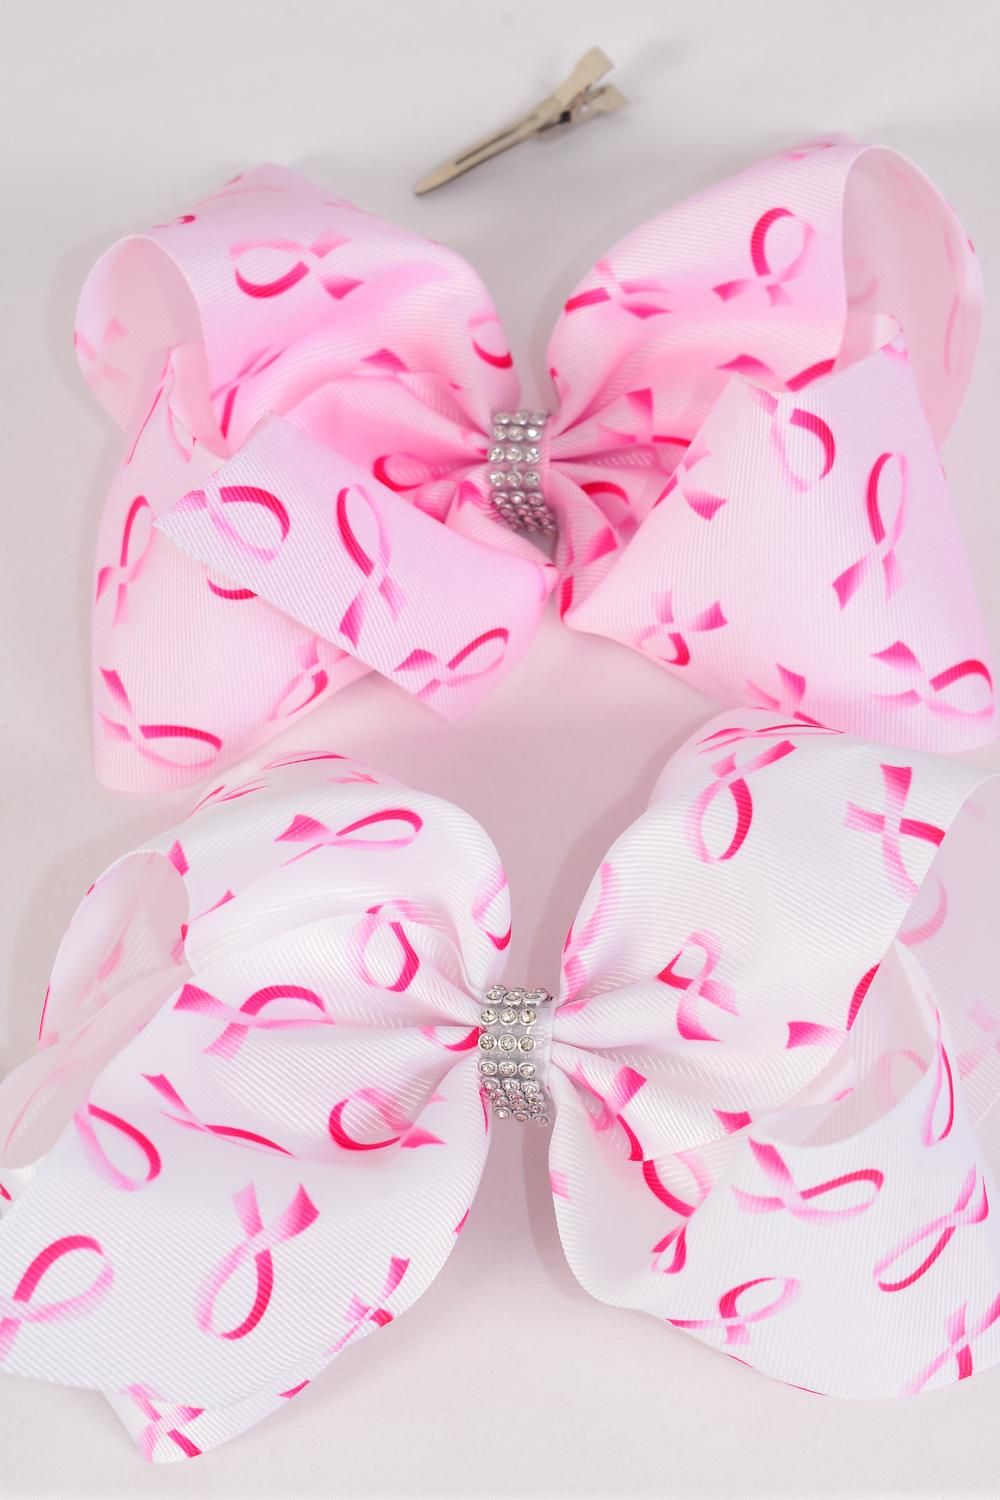 "Hair Bow Jumbo Cheer Type Bow Pink Ribbon Center Clear Stones Grosgrain/DZ **Alligator Clip** Size-8""x 7"" Wide,6 of Each Color Asst,Clip Strip & UPC Code"